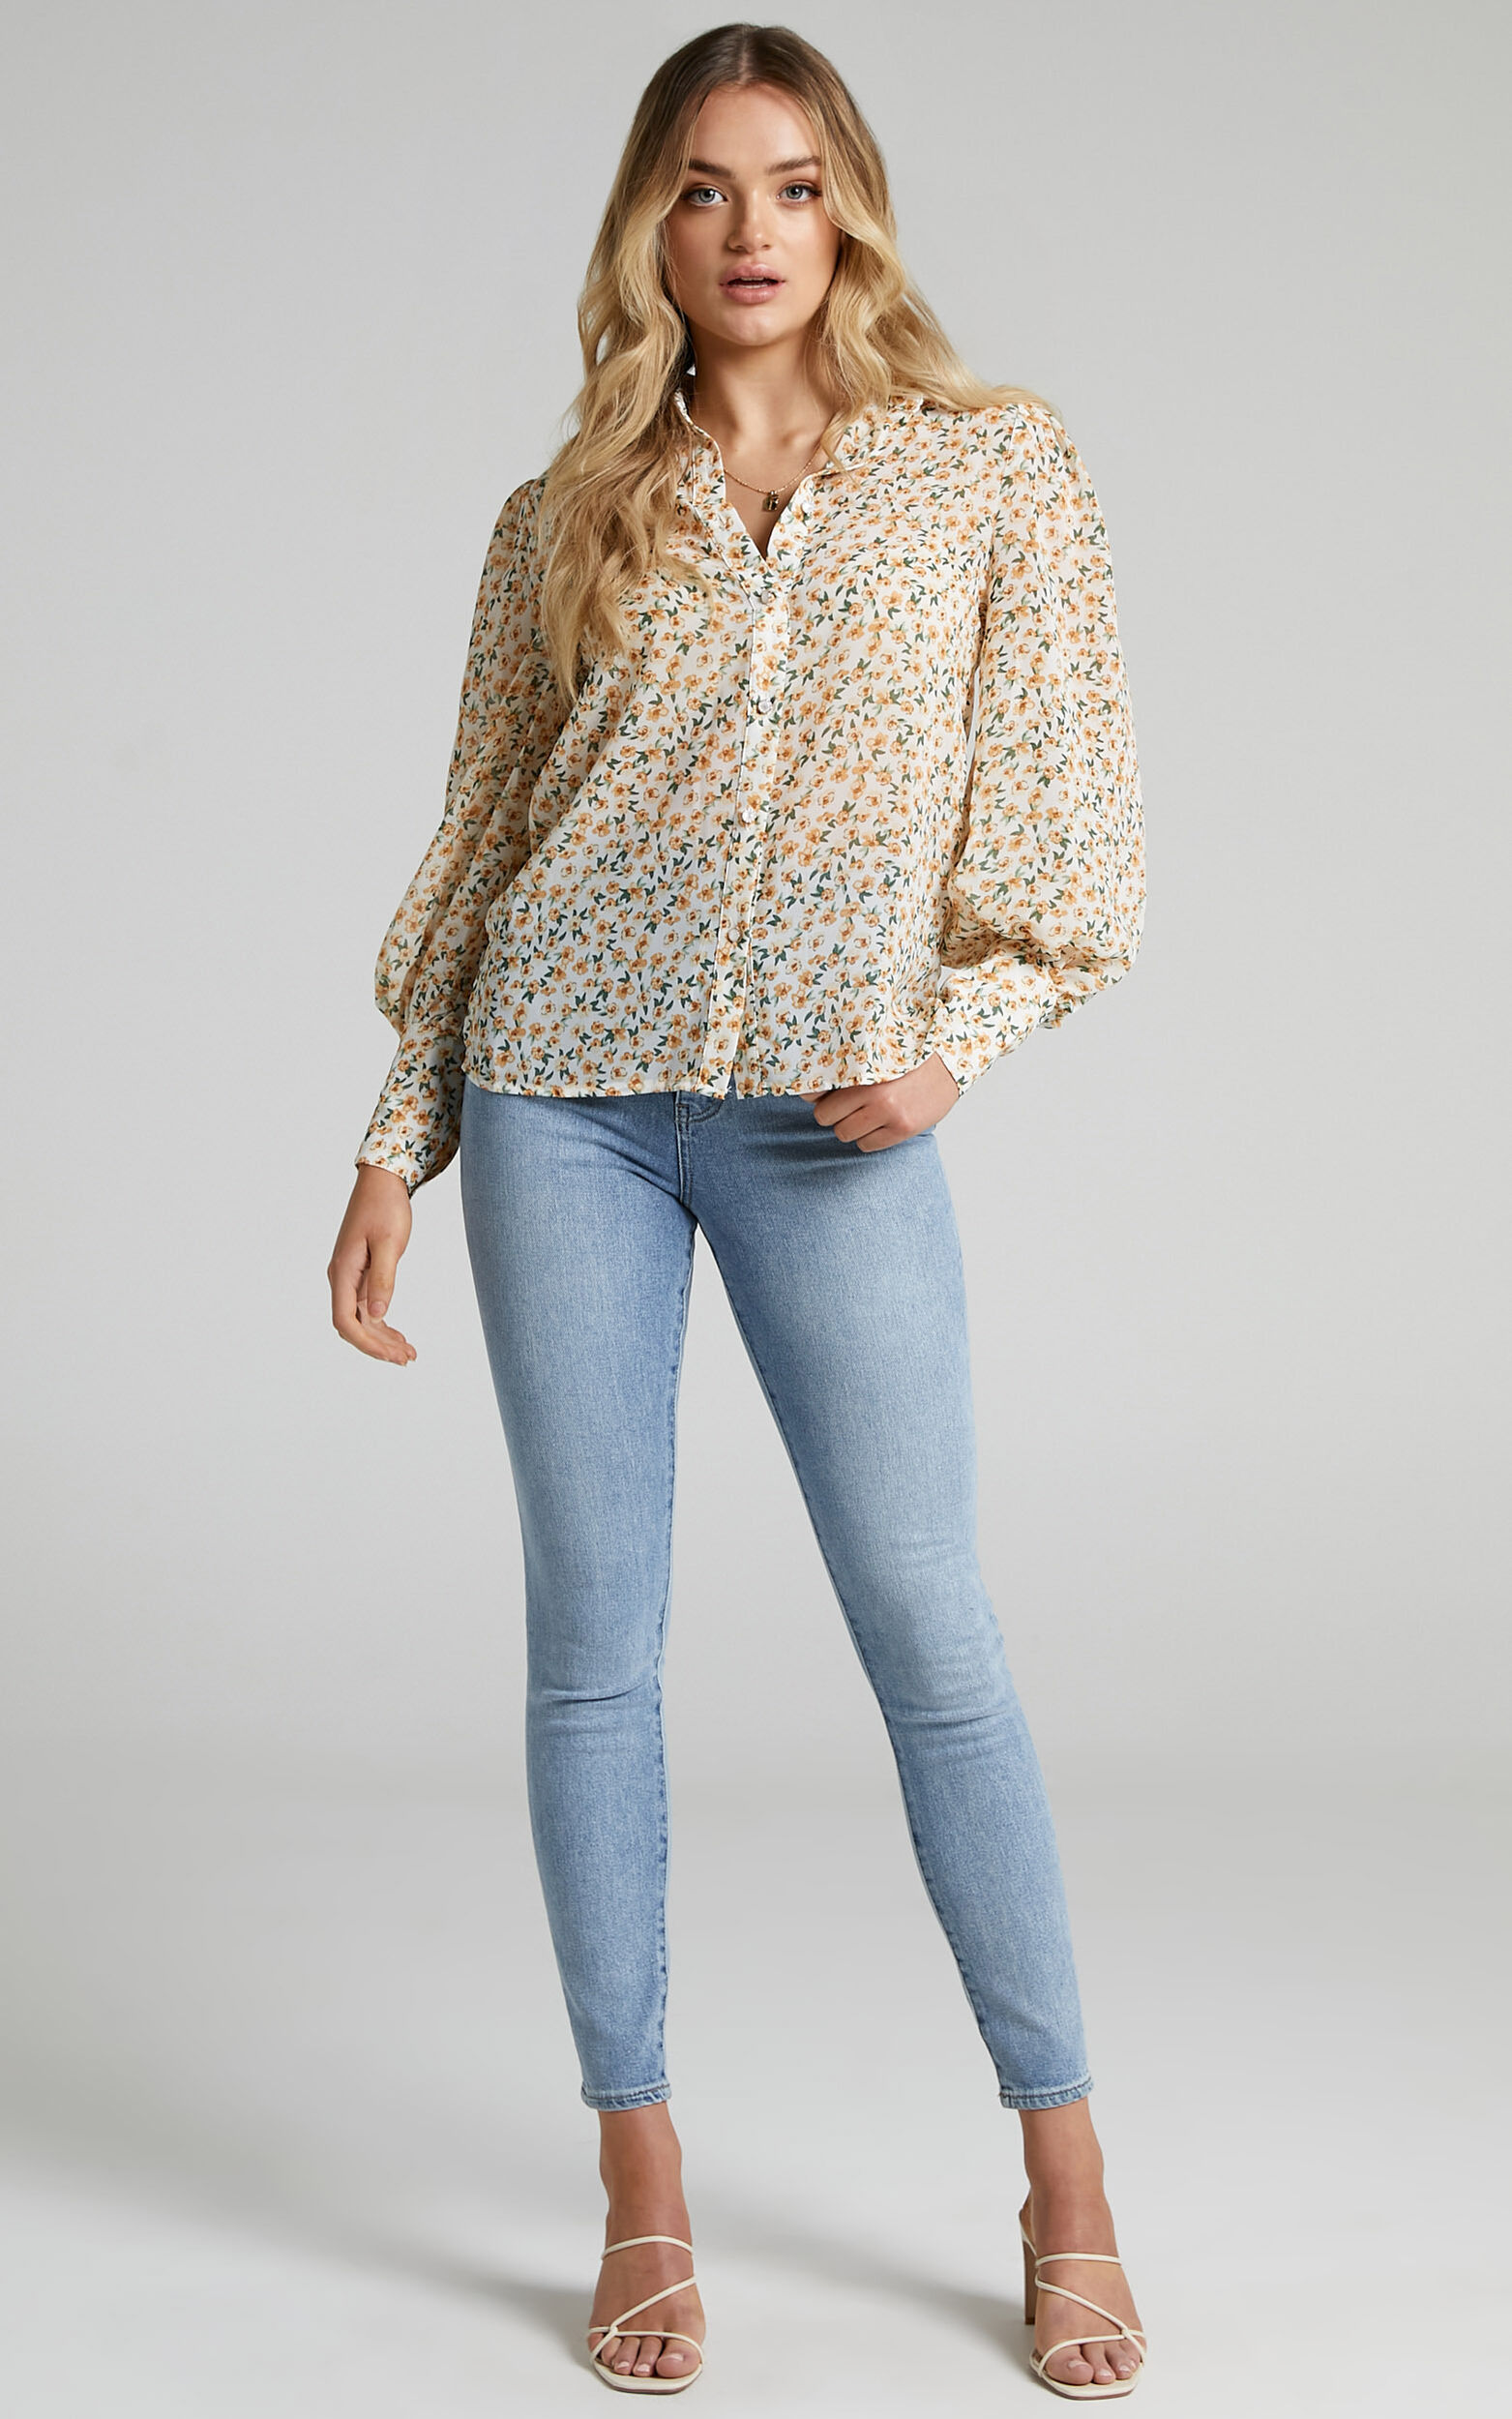 Seven Wonders - Yasmine Shirt in Yellow Floral - L, MLT1, super-hi-res image number null